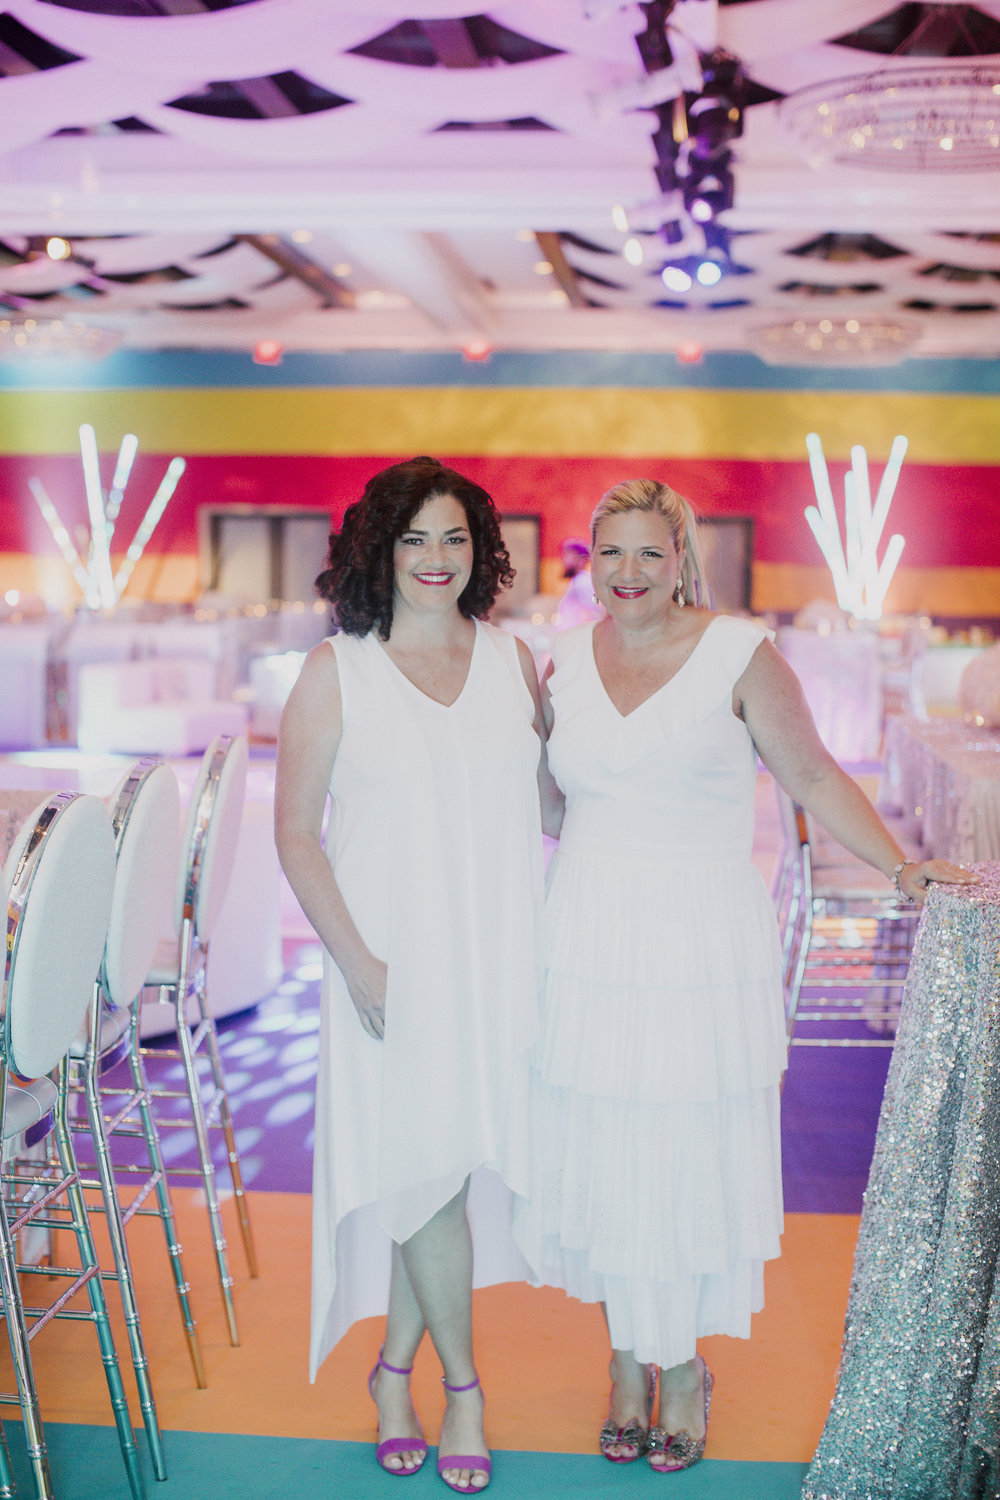 Our fearless leaders of Engage! Luxury Wedding Business Summit. Photo by John Cain Sargent. Production and design by HMR Designs.